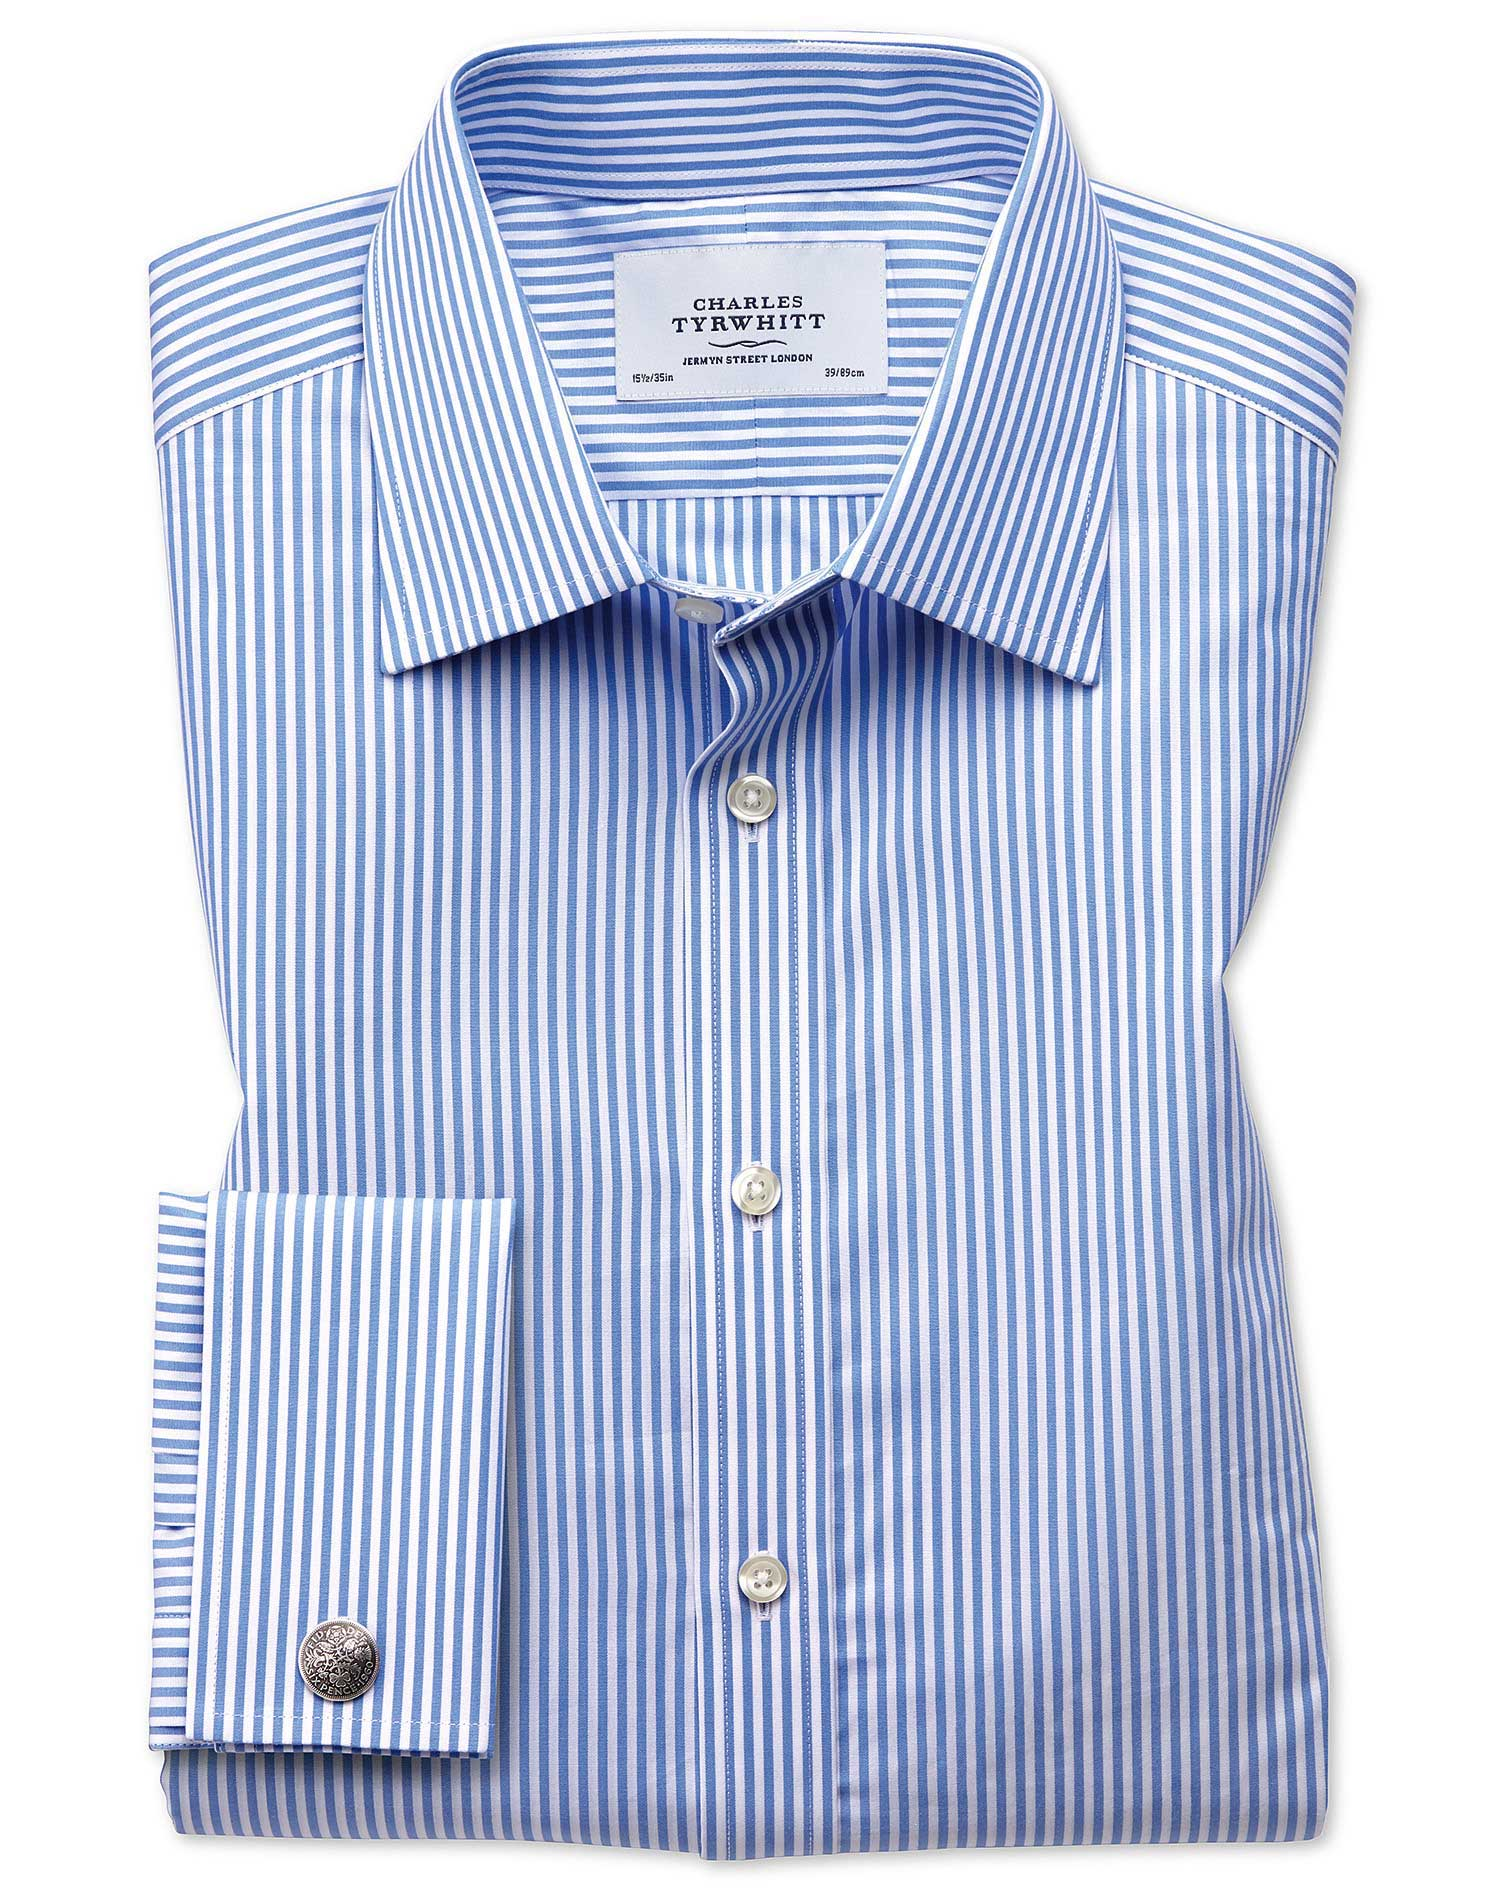 Slim Fit Bengal Stripe Sky Blue Cotton Formal Shirt Double Cuff Size 15/34 by Charles Tyrwhitt